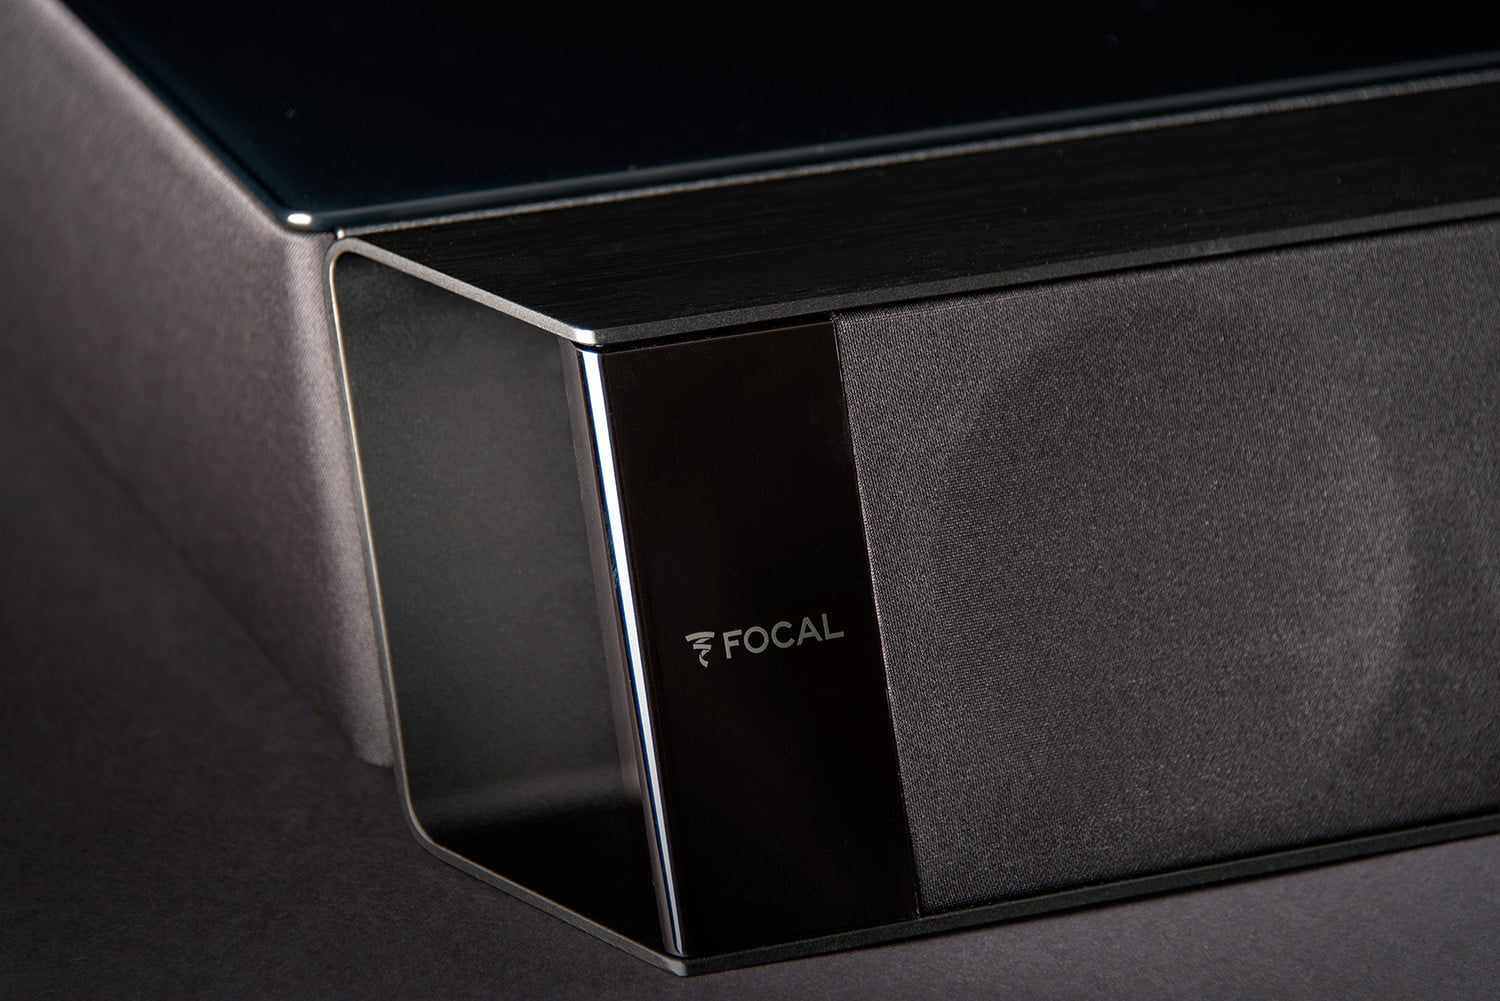 Focal Dimension Soundbar And Subwoofer Review Digital Trends Jvc Is All About The Best In Sound Minus Wiring Alone Or Together Bar Look Refined Enough To Fit Well Within Confines Of A Neat Tidy Space Series Isnt